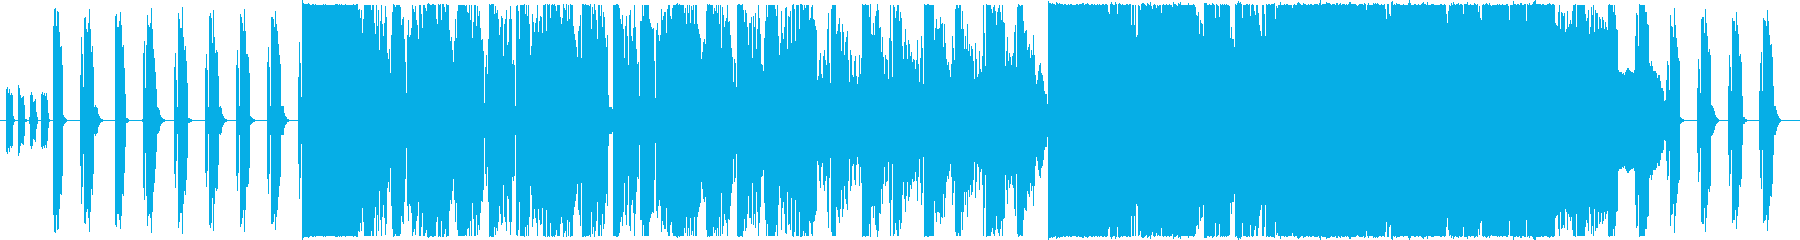 BGM & BOSS battle with a tense atmosphere's reproduced waveform